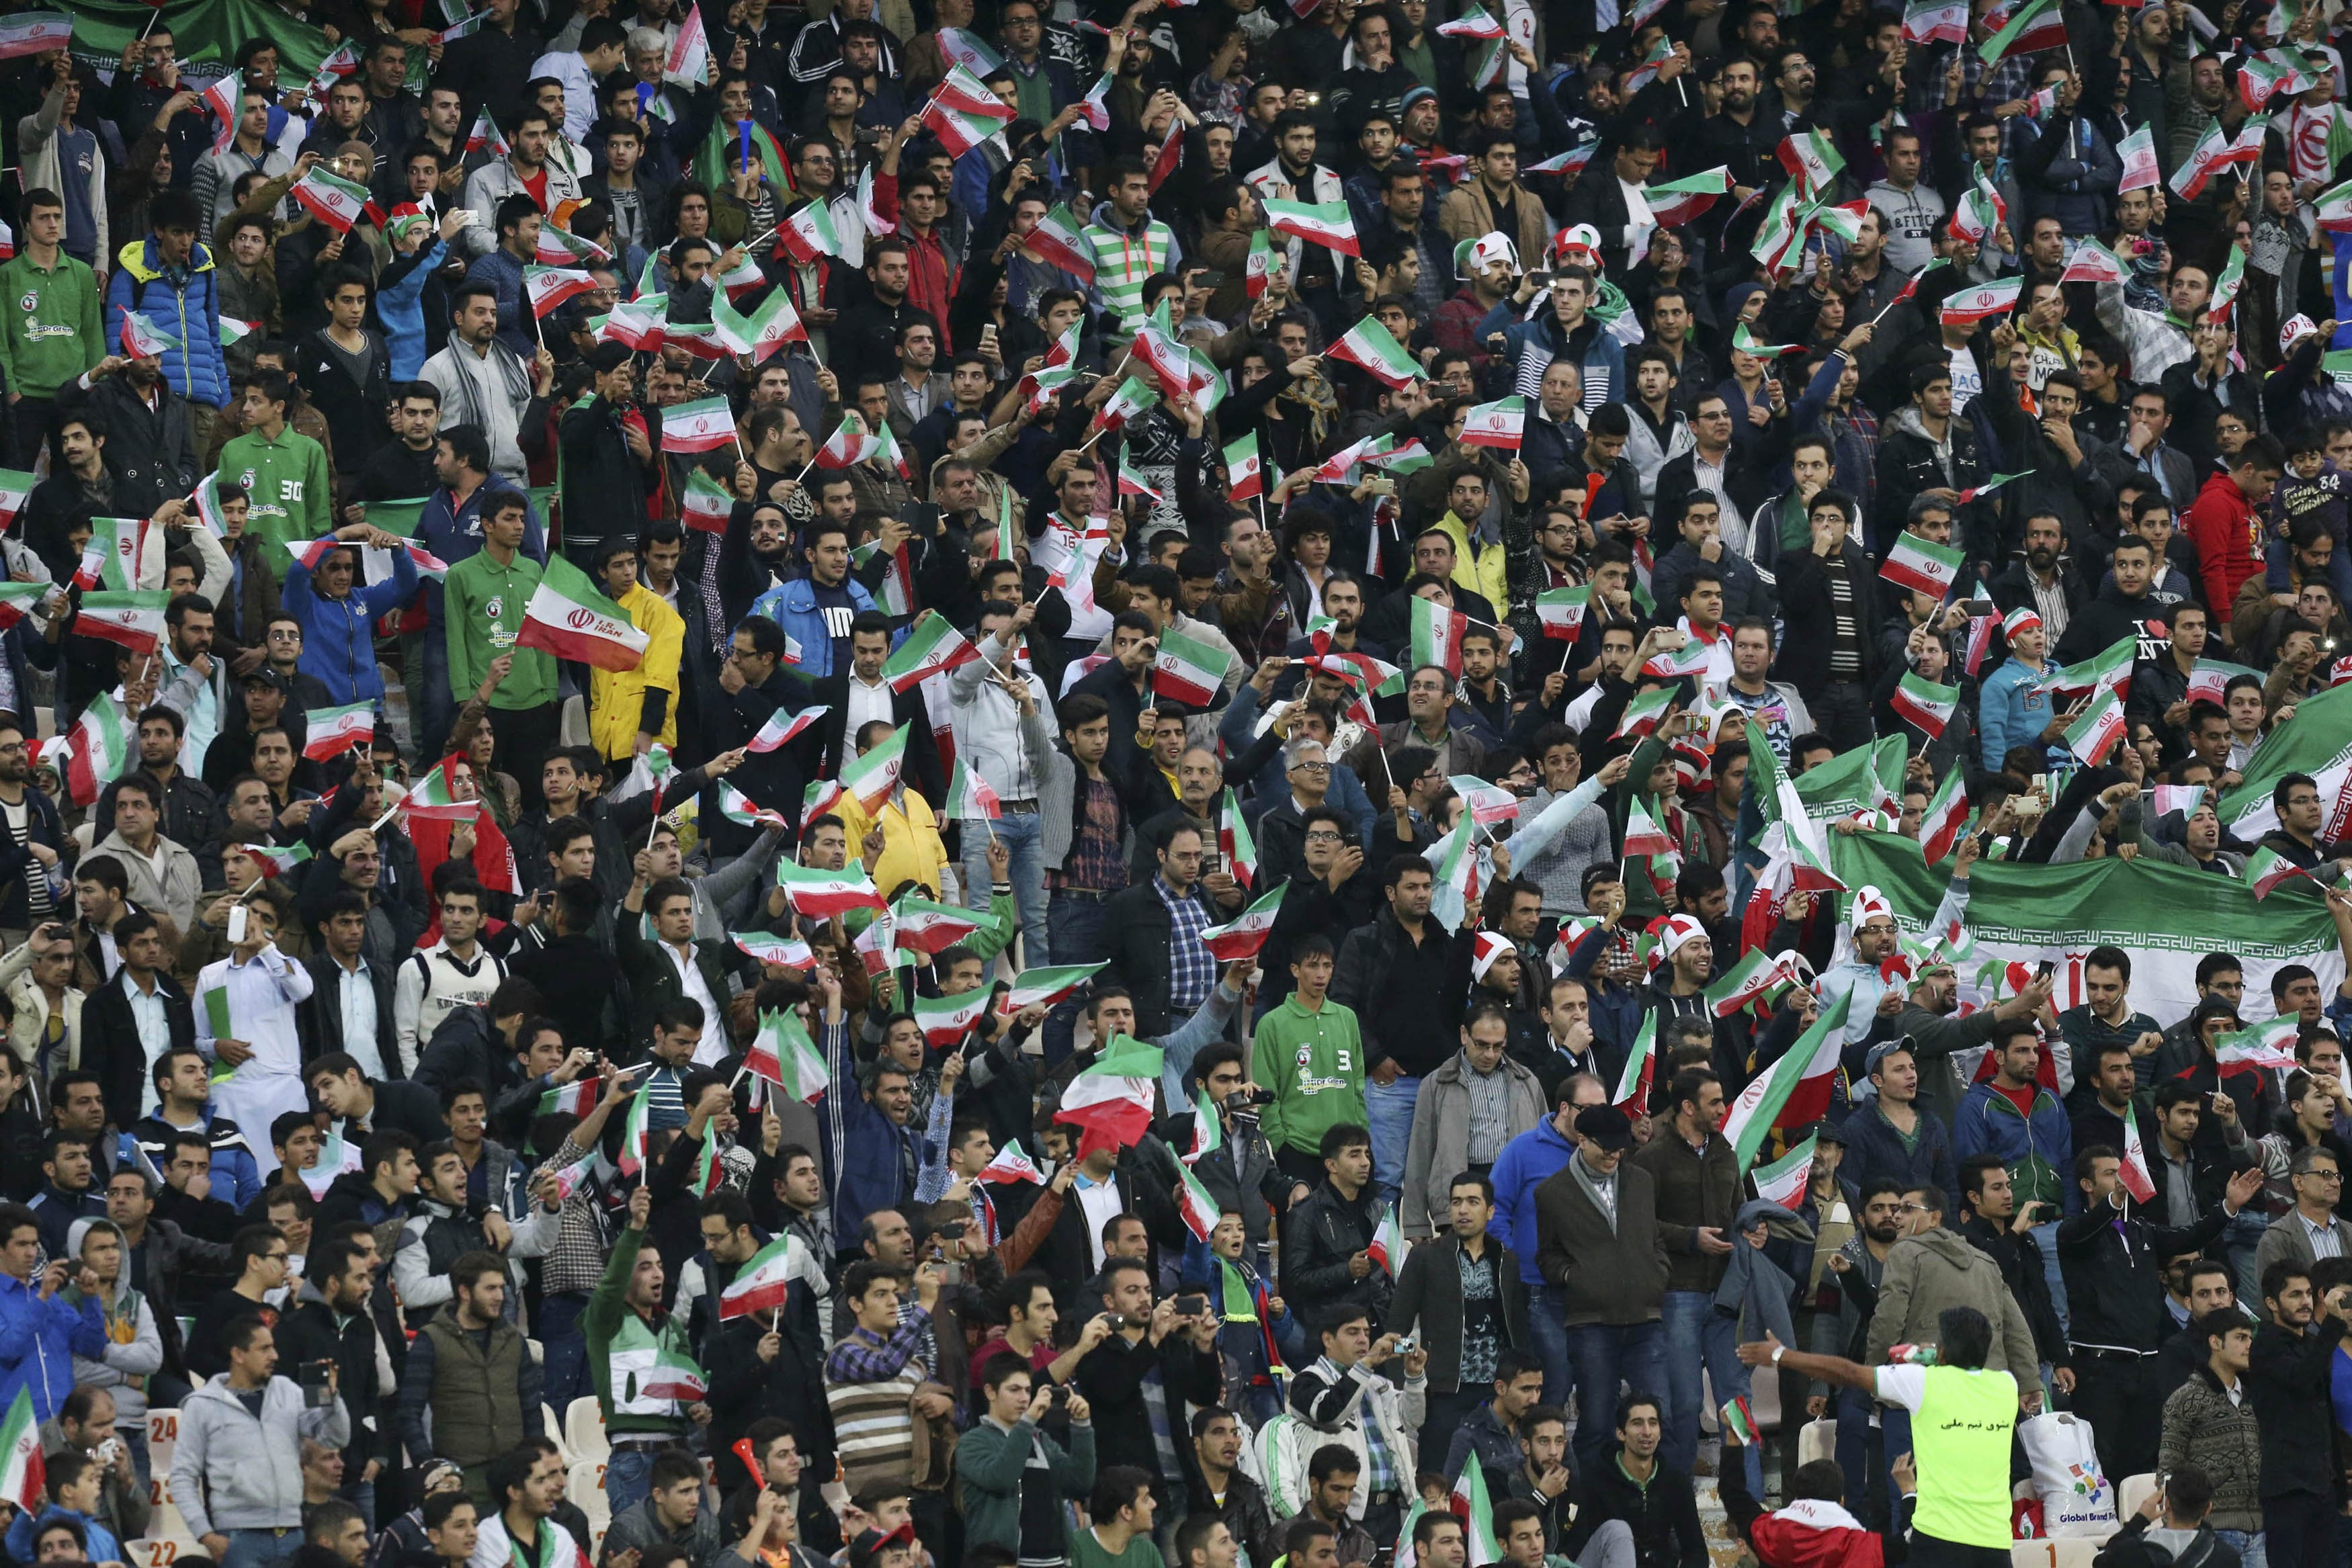 Iranian soccer supporters wave their country's flag following a friendly match at the Azadi, (freedom) stadium in Tehran, Iran on Nov. 18, 2014.